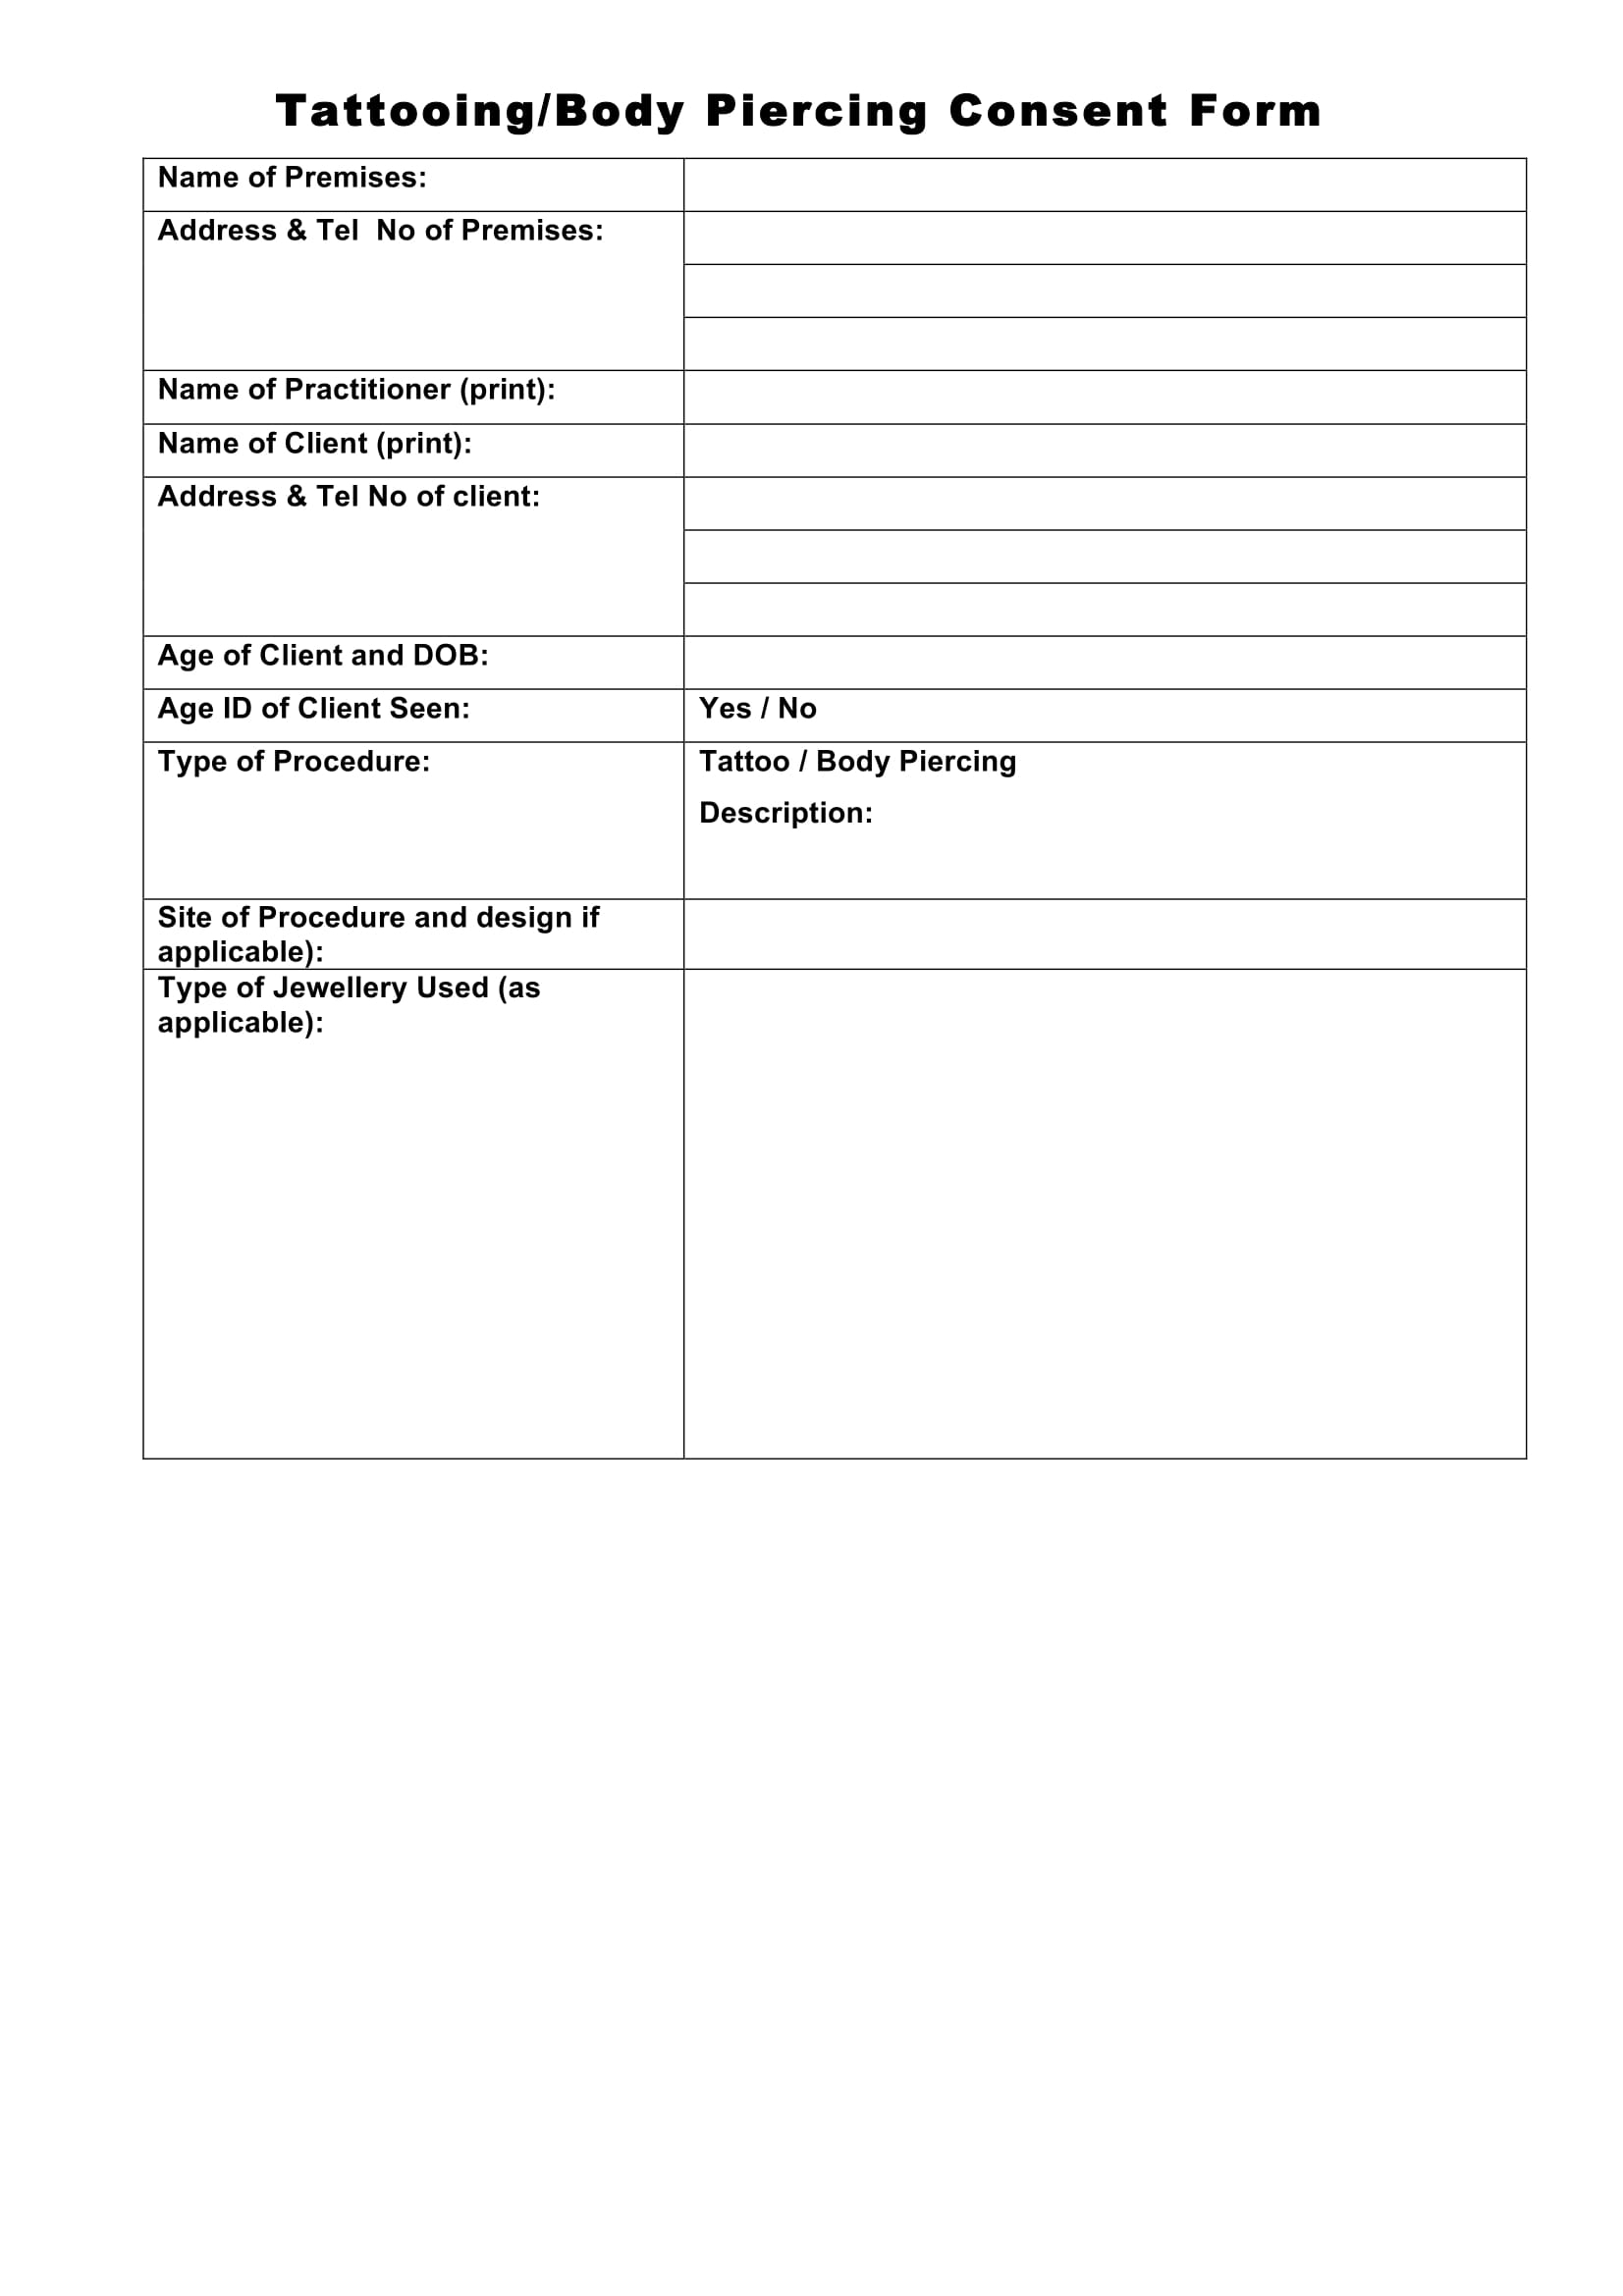 tattooing consent form 1